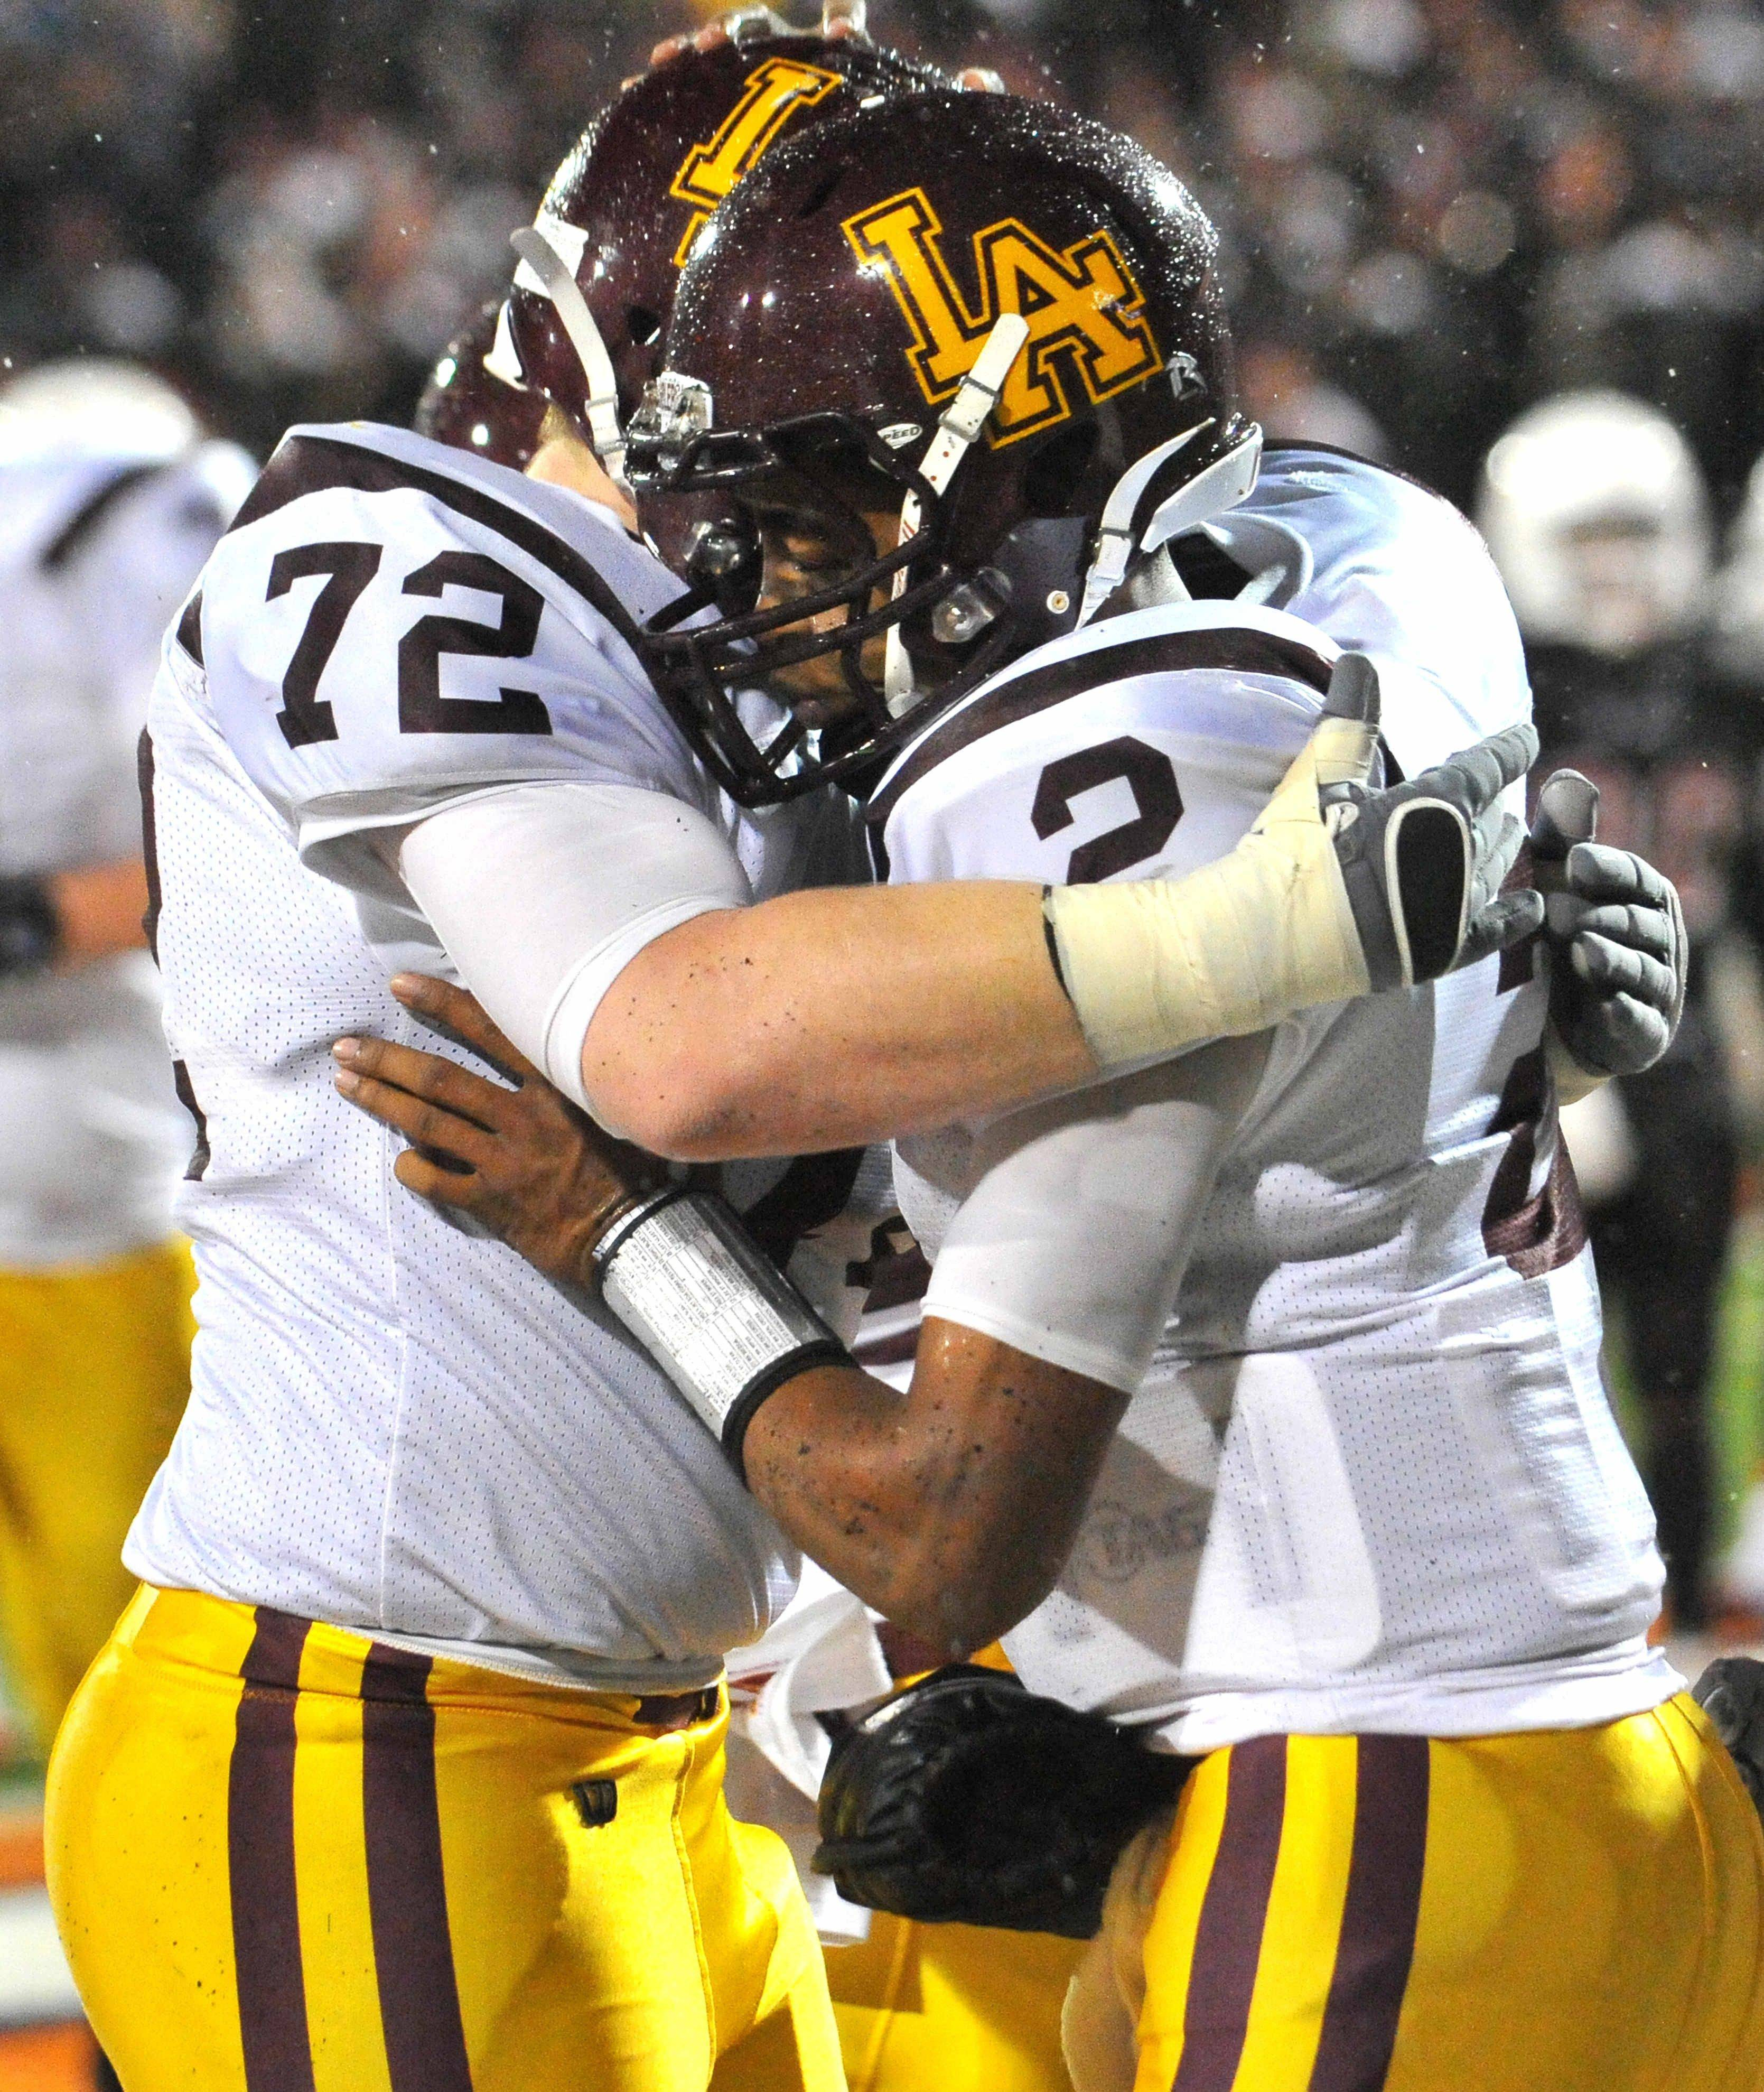 Loyola Academy Philip Spagnolo (72) hugs teammate Malcom Weaver (2) after Weaver's touchdown against Bolingbrook.